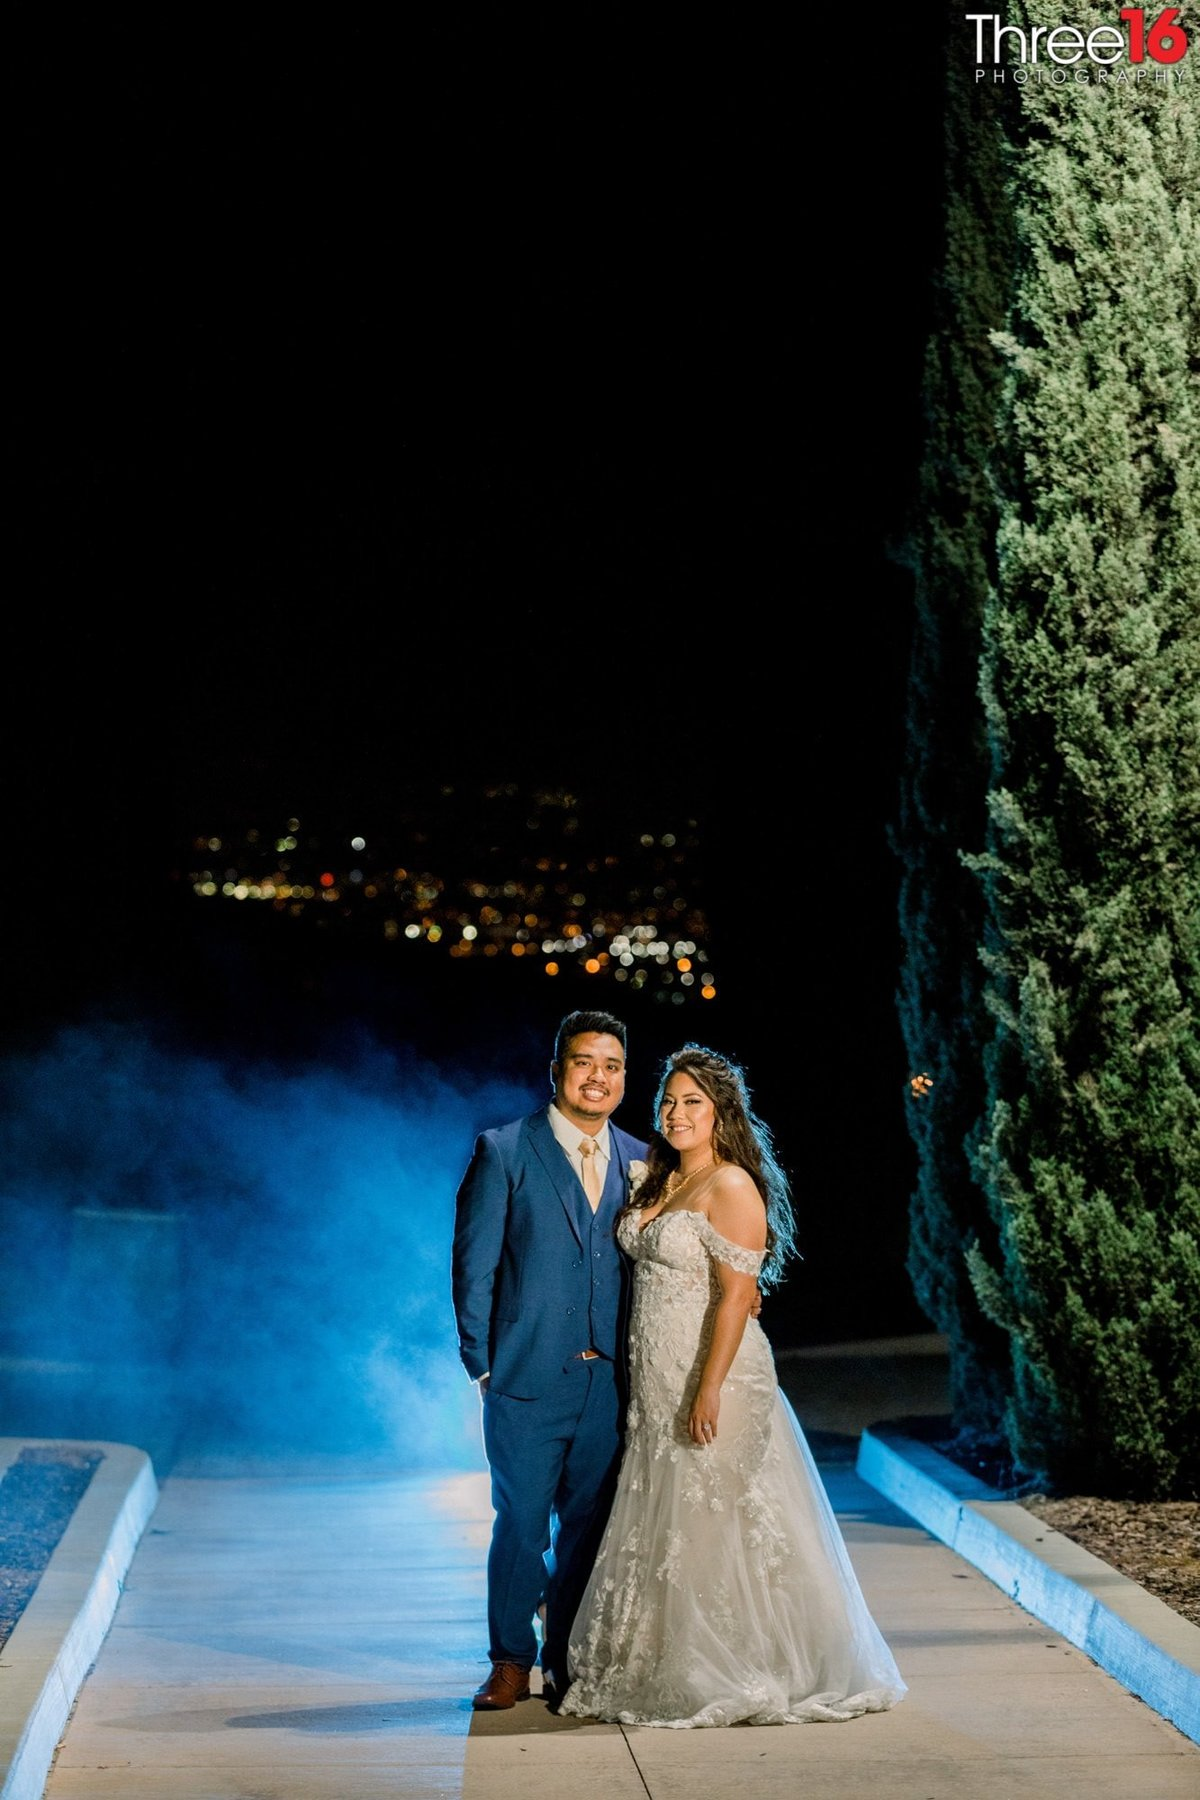 Bride and Groom pose together for a night shot